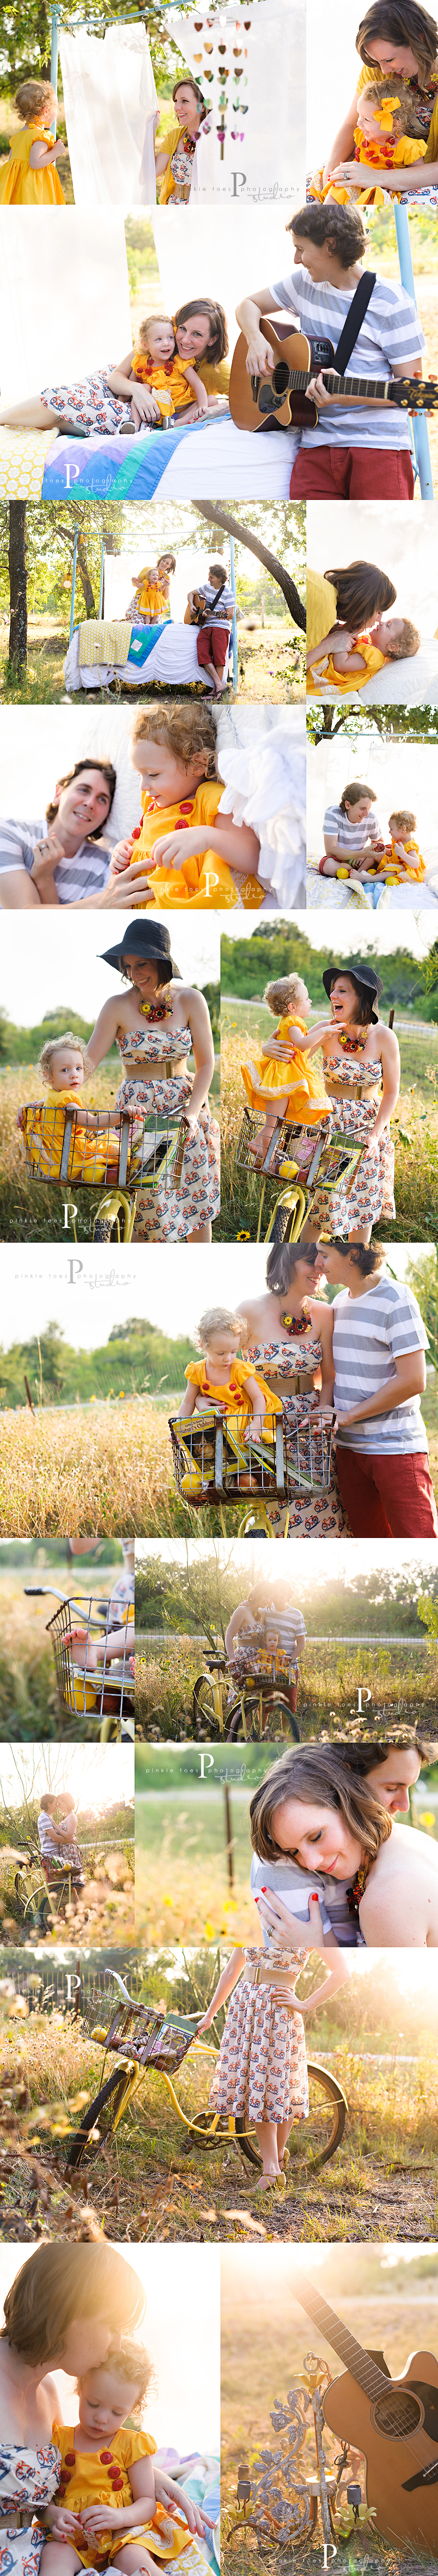 cb-austin-modern-lifestyle-family-photographer.jpg